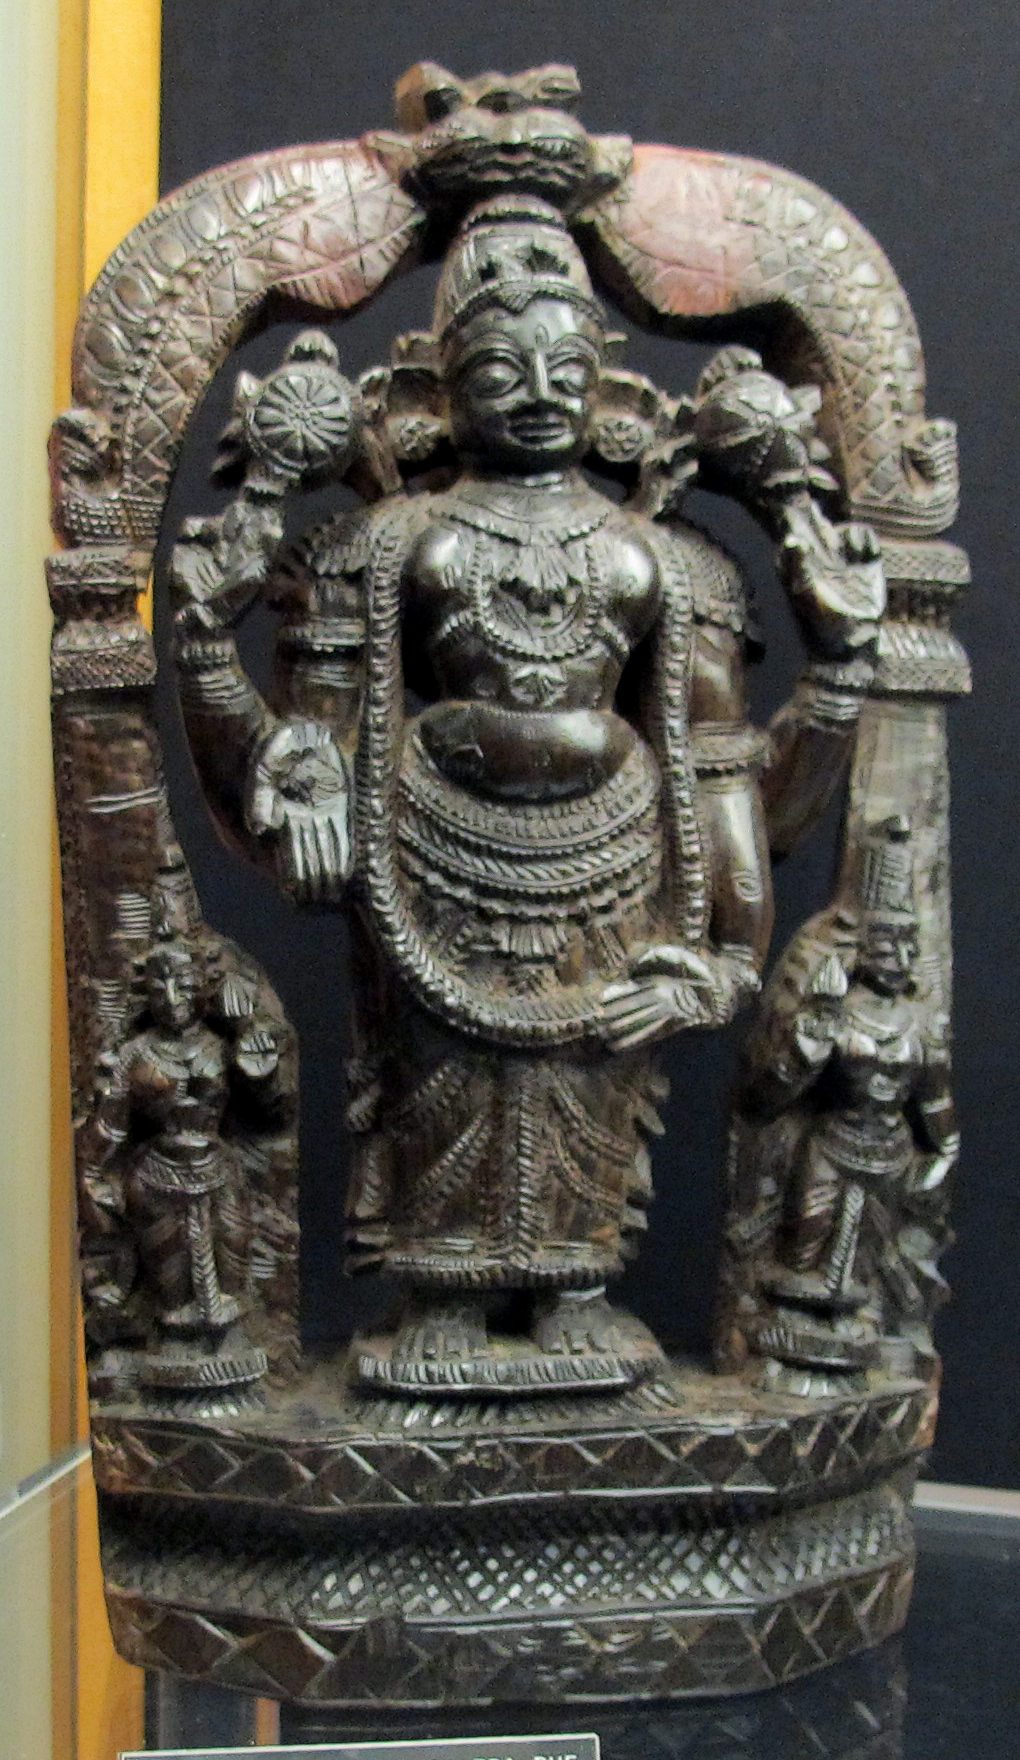 Tirupati India  city images : Description India, tirupati, statuetta di vishnu quadribrachio tra due ...